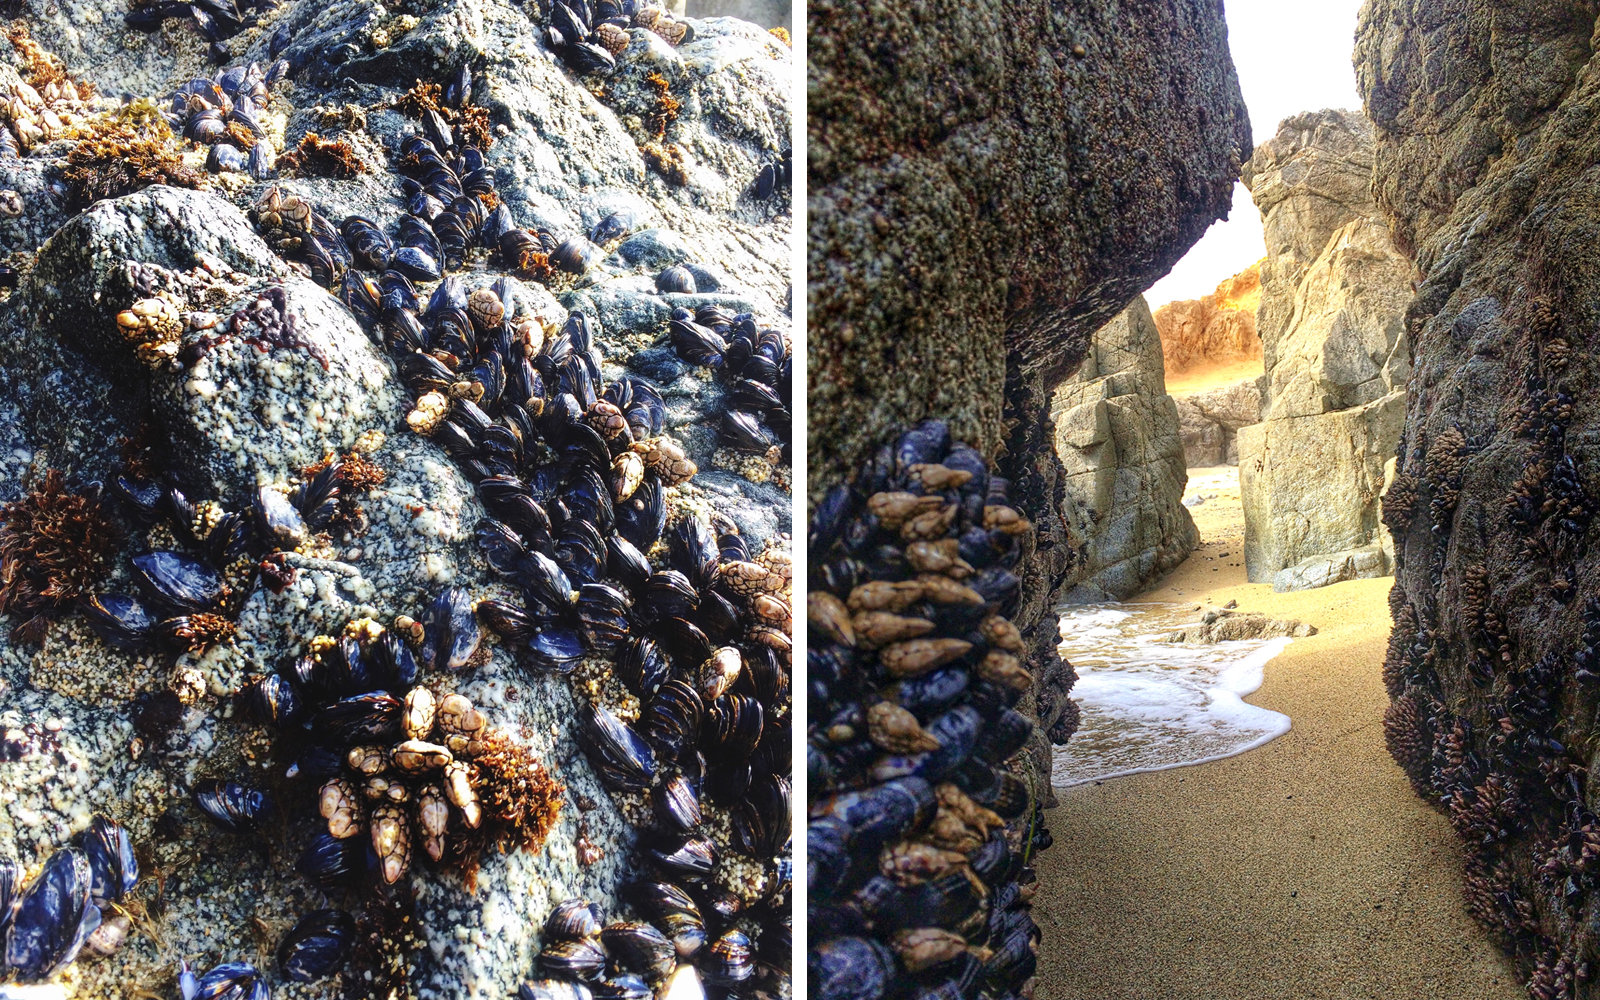 Mussels at Bodega Bay in California